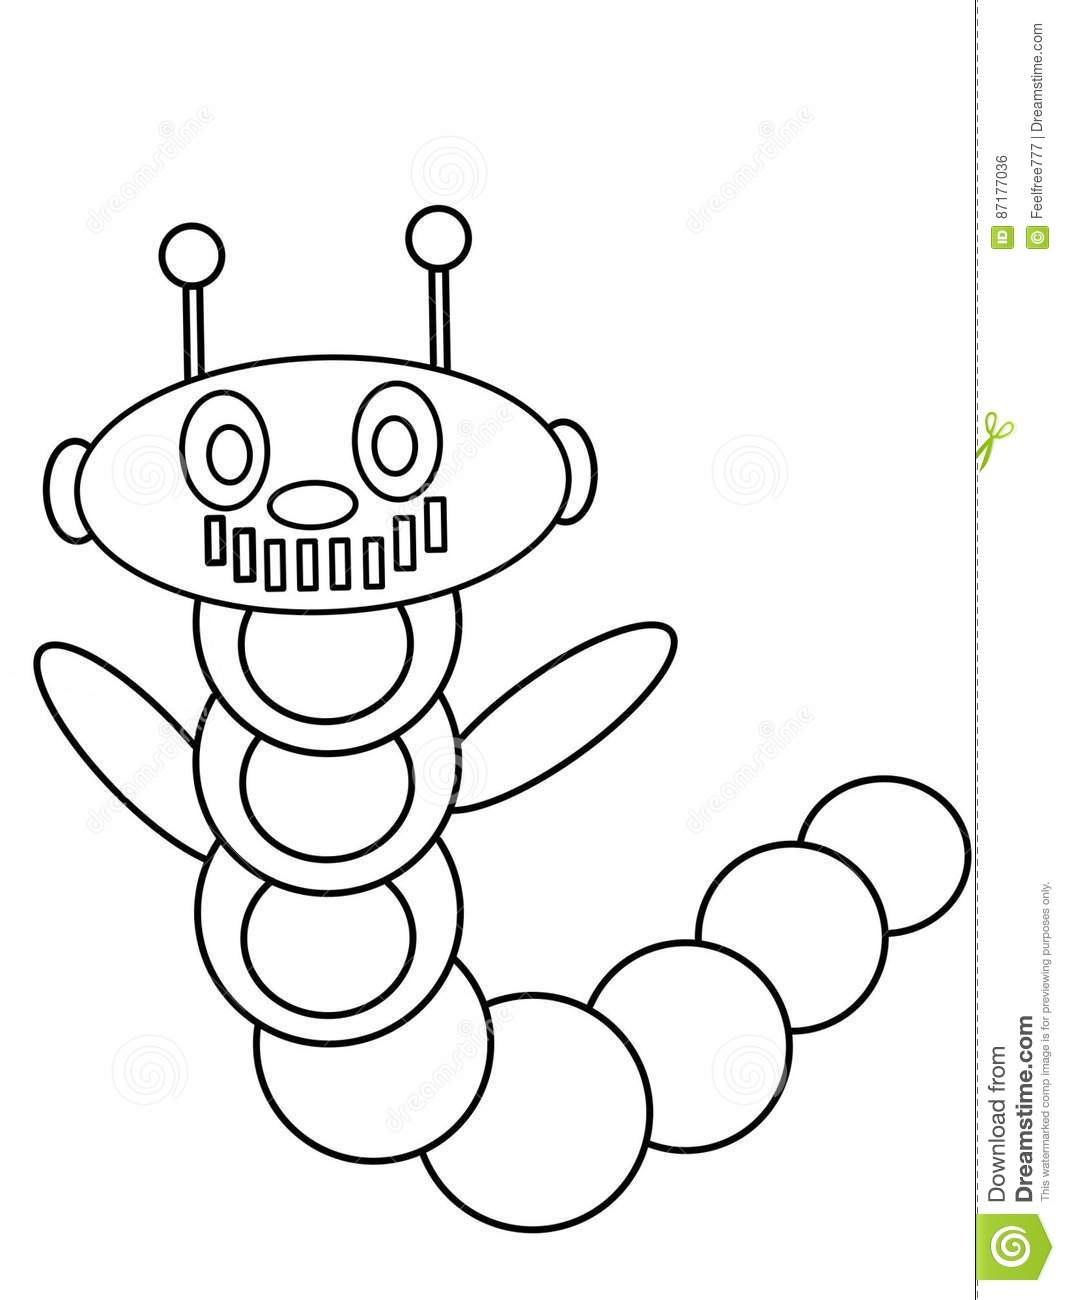 Worm Robot High Quality Kids Coloring Pages Stock Vector